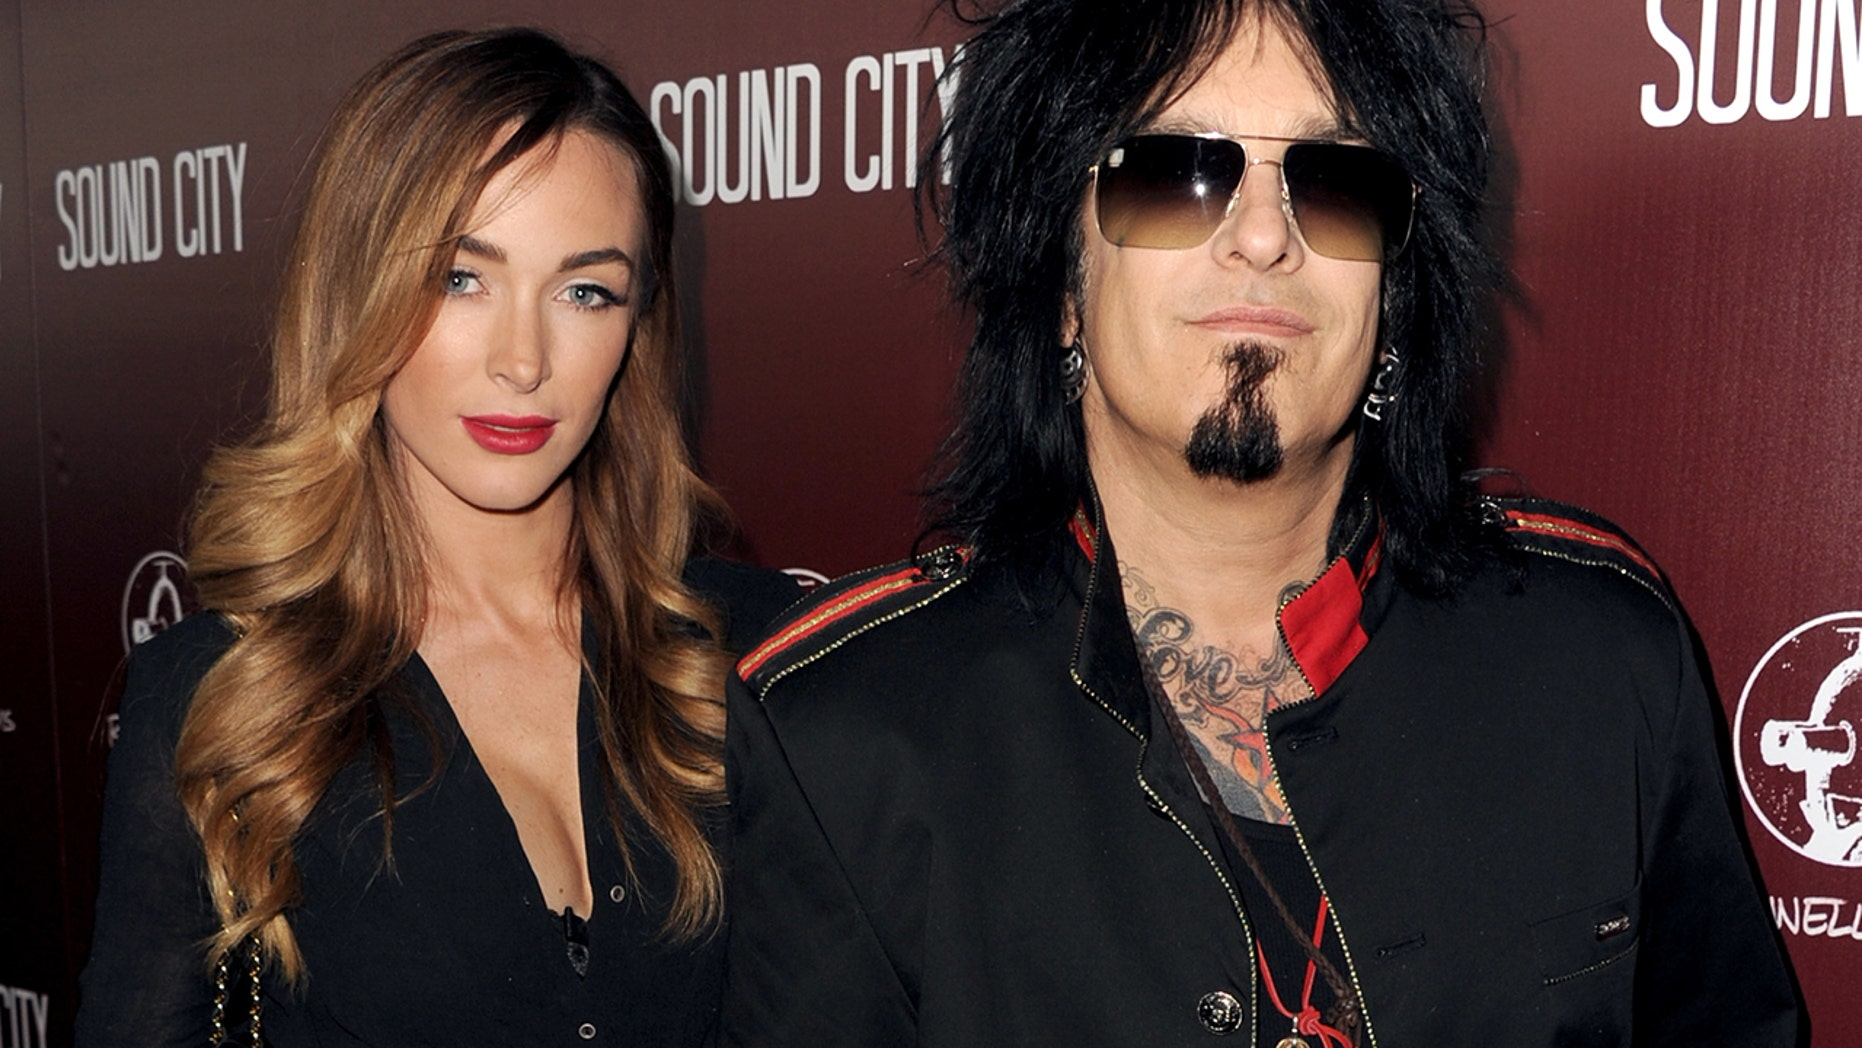 "Musician Nikki Sixx (L) and Courtney Bingham arrive at the premiere of ""Sound City"" at ArcLight Cinemas Cinerama Dome on January 31, 2013 in Hollywood, California."